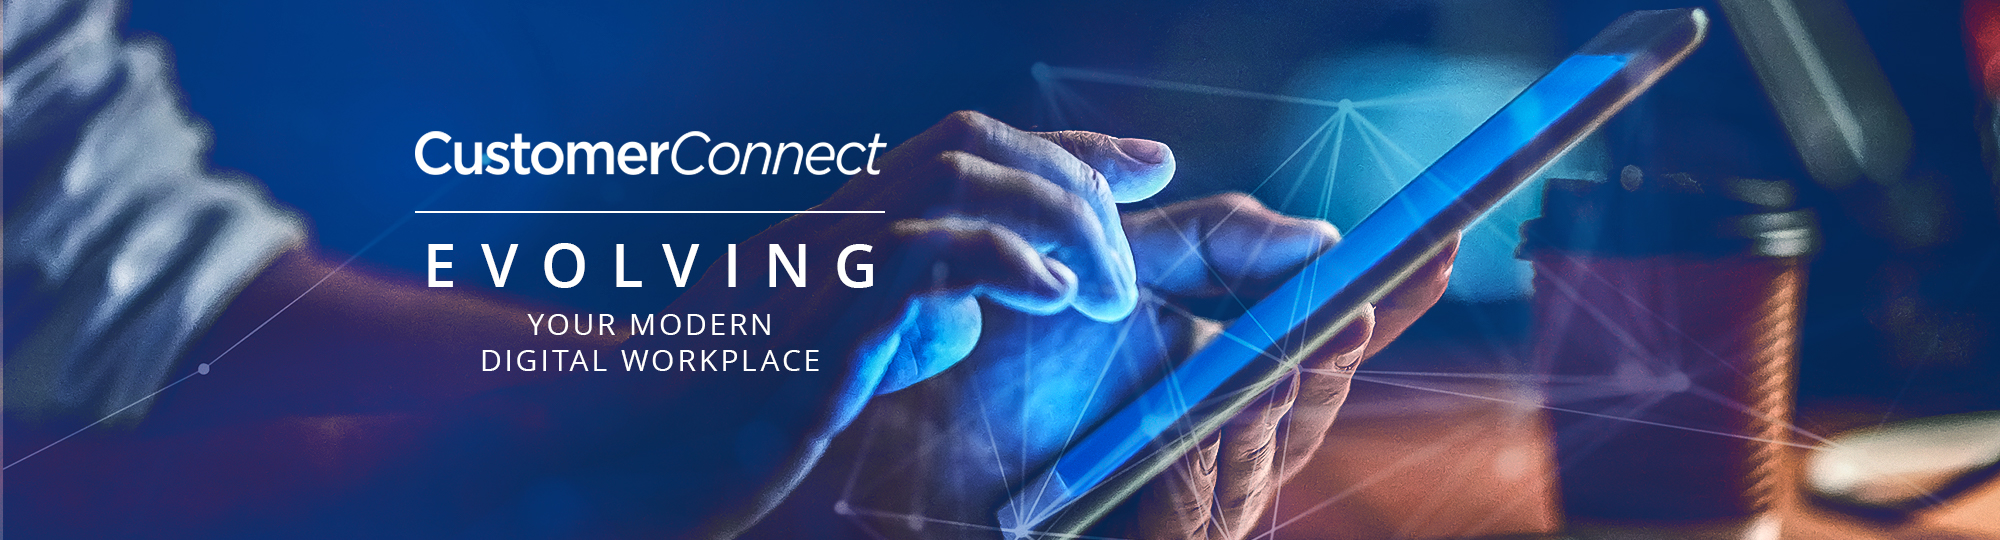 Zones CustomerConnect Virtual Conference on June 16, 2020: Evolving Your Modern Digital Workplace